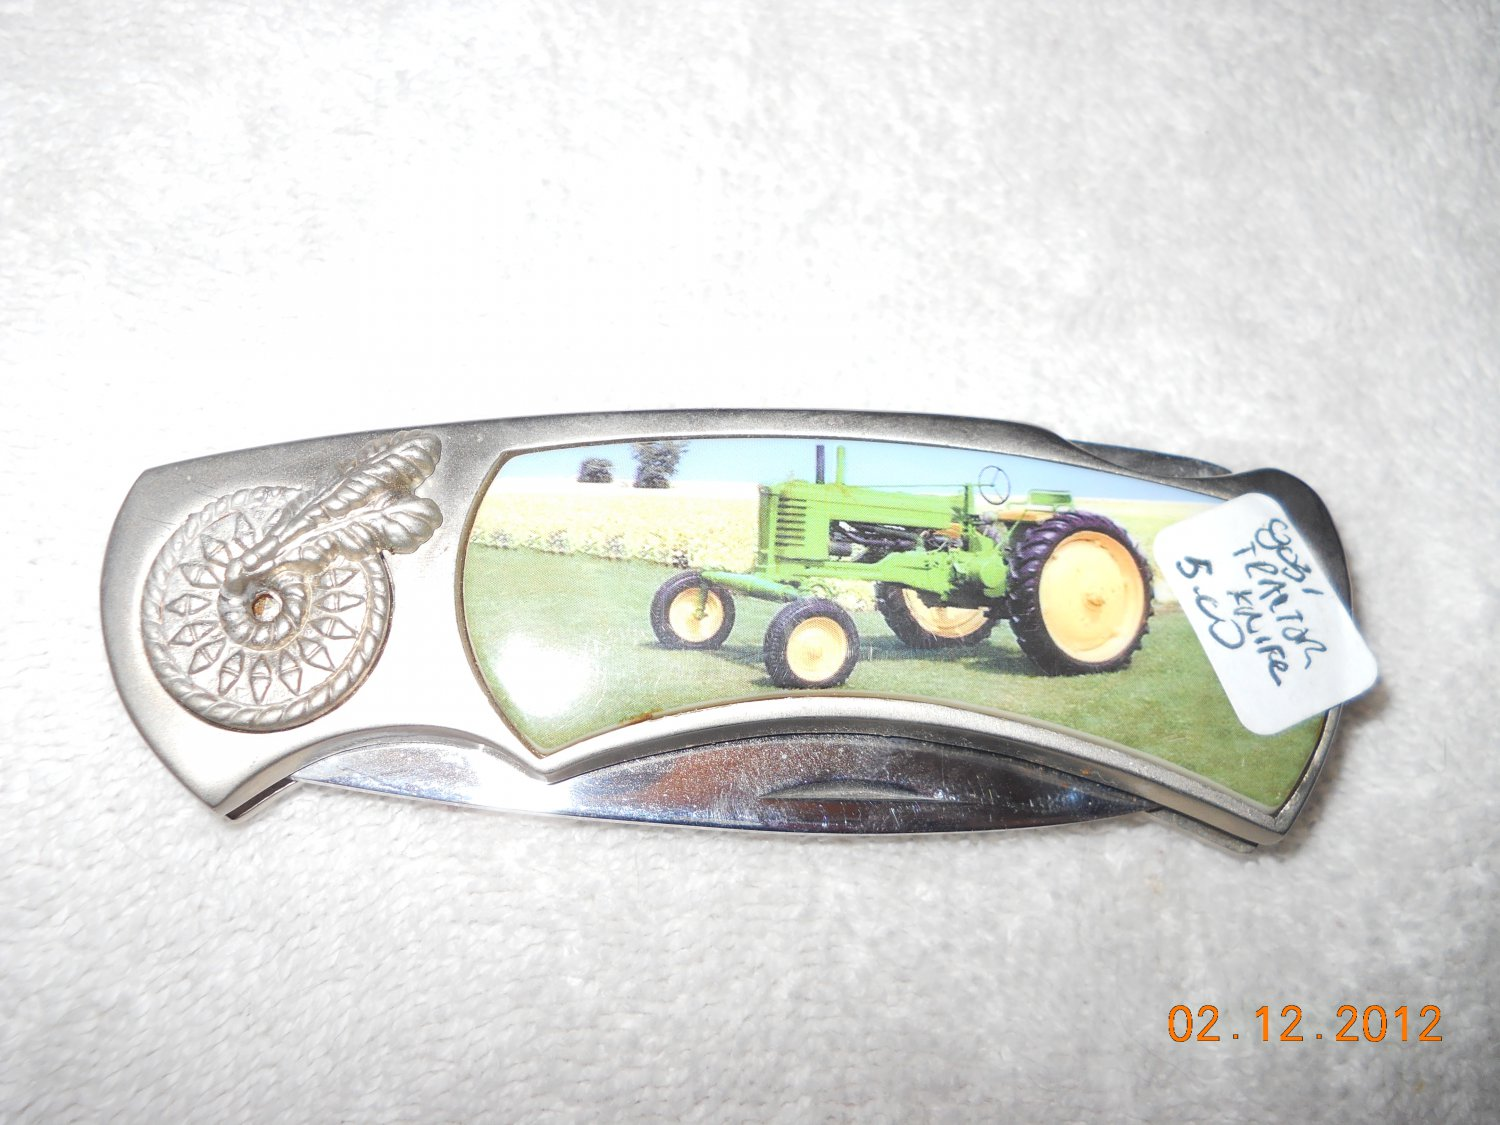 Stainless Steel Collector's Tractor Knife w/ lock blade